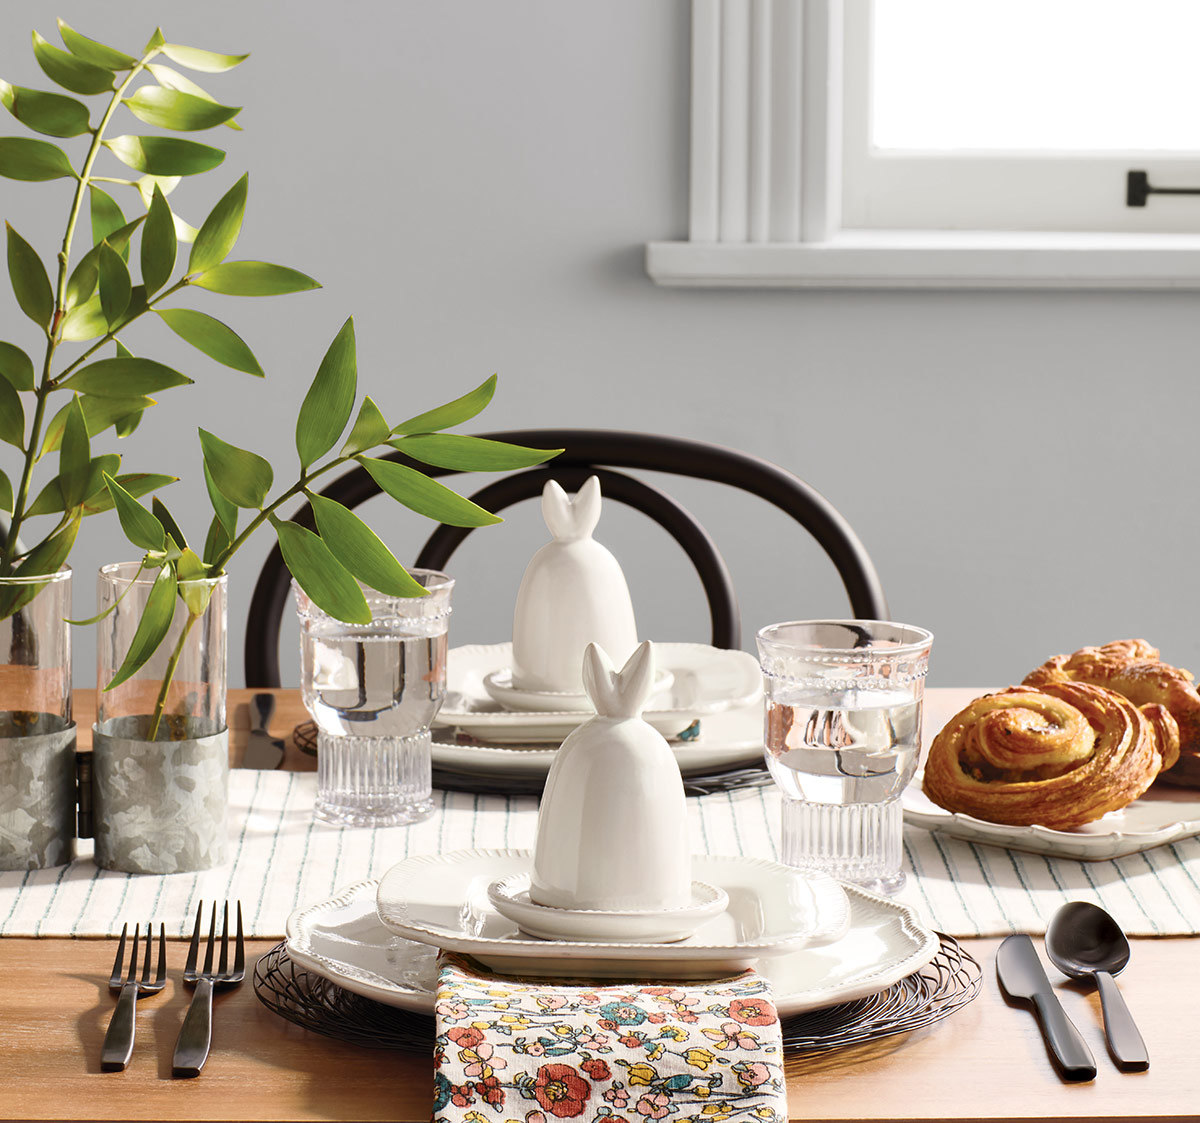 Hearth and Hand Spring Table Setting